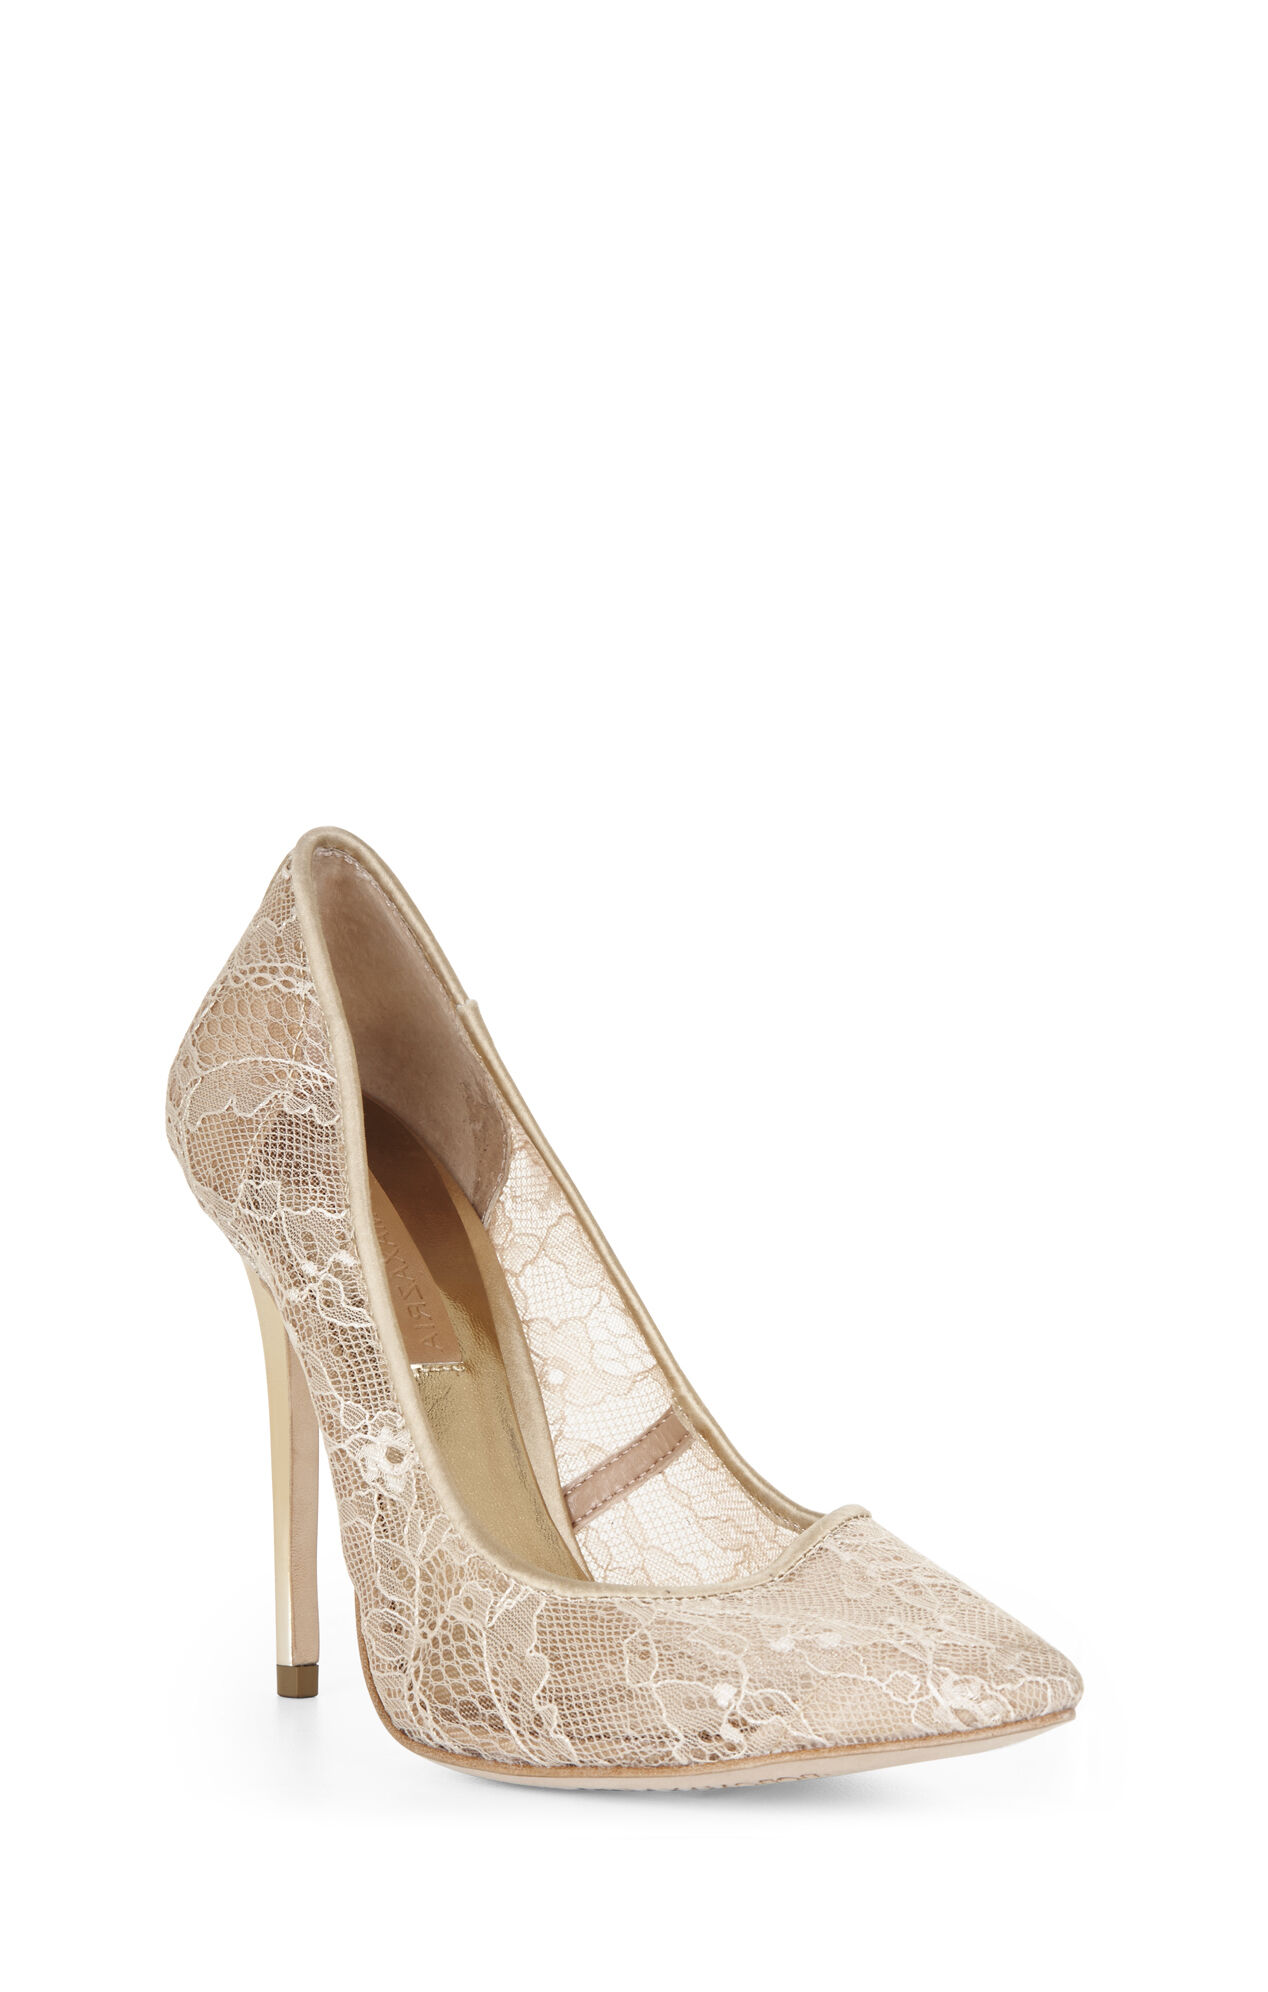 Opia Lace High-Heel Pump